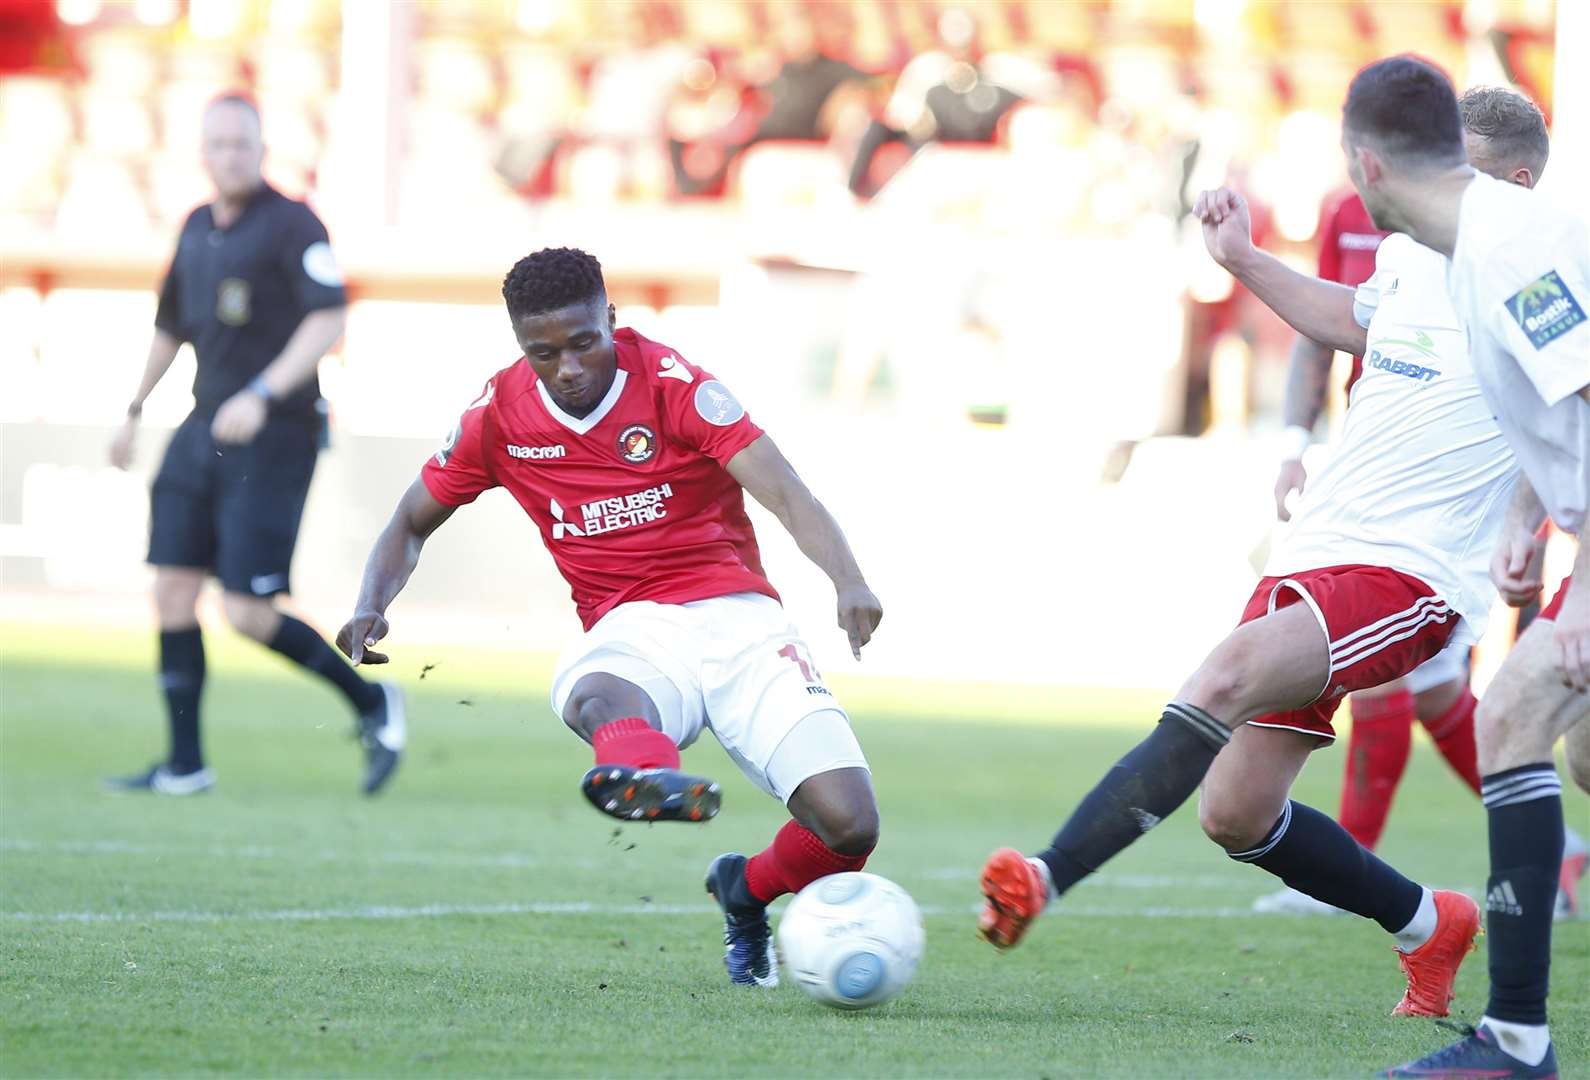 Darren McQueen in action for Ebbsfleet earlier this season Picture: Andy Jones